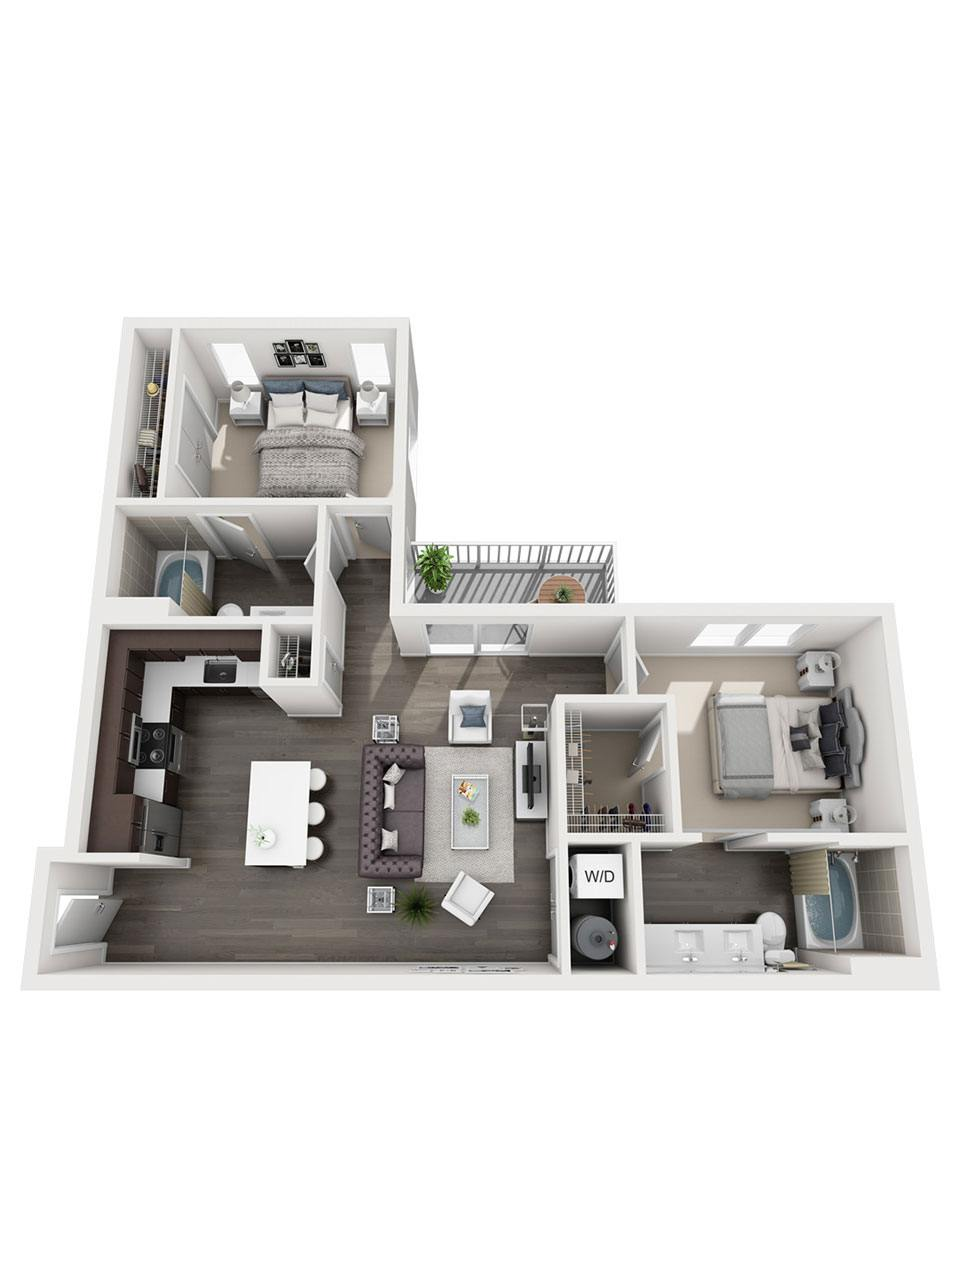 Plan 2 Bedroom – B6 | 2 Bath